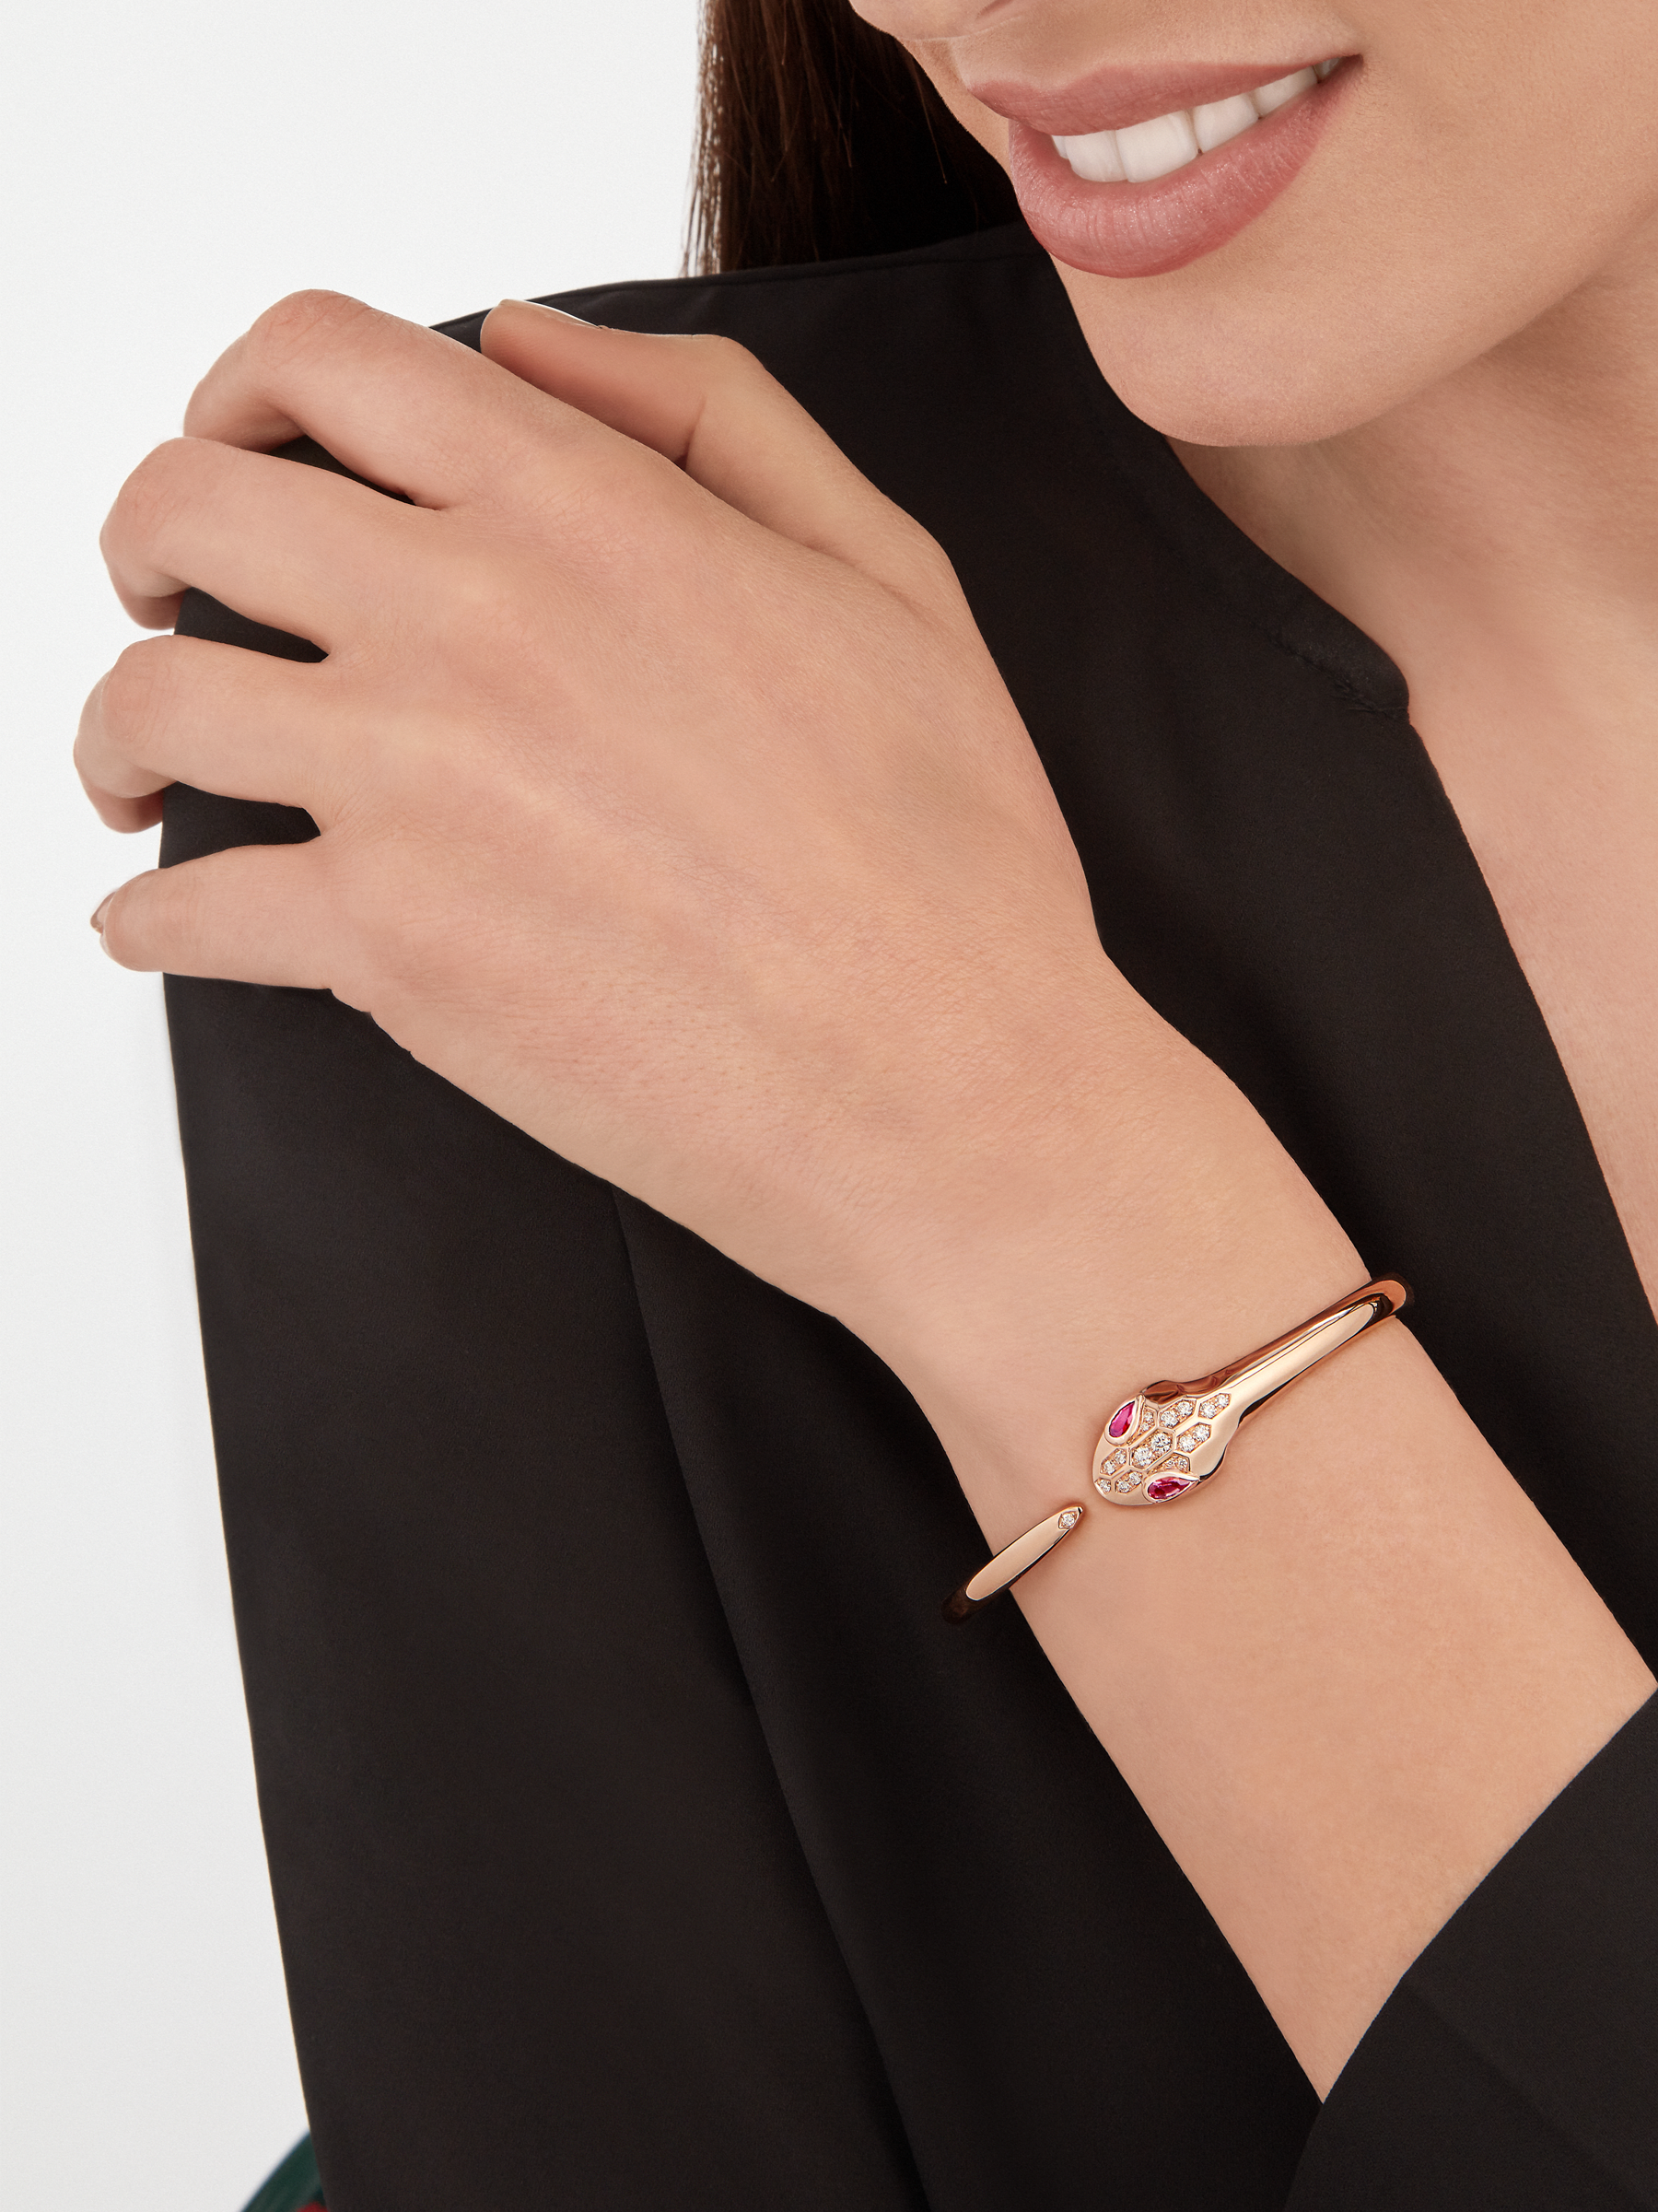 Serpenti bracelet in 18 kt rose gold, set with rubellite eyes and demi-pavé diamonds on the head and the tail. BR857813 image 3